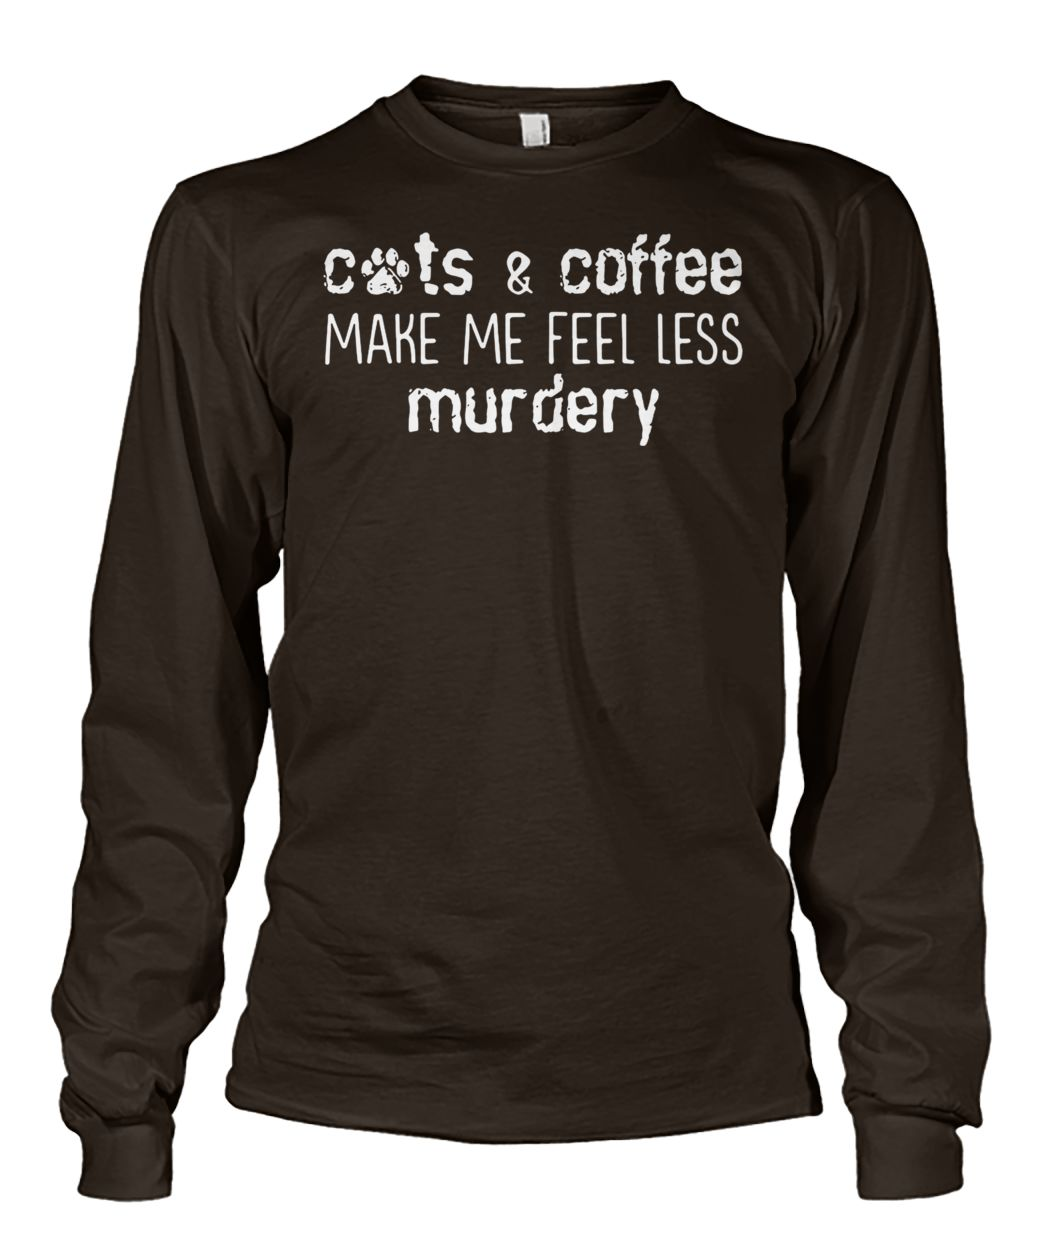 Cats and coffee make me feel less murdery unisex long sleeve